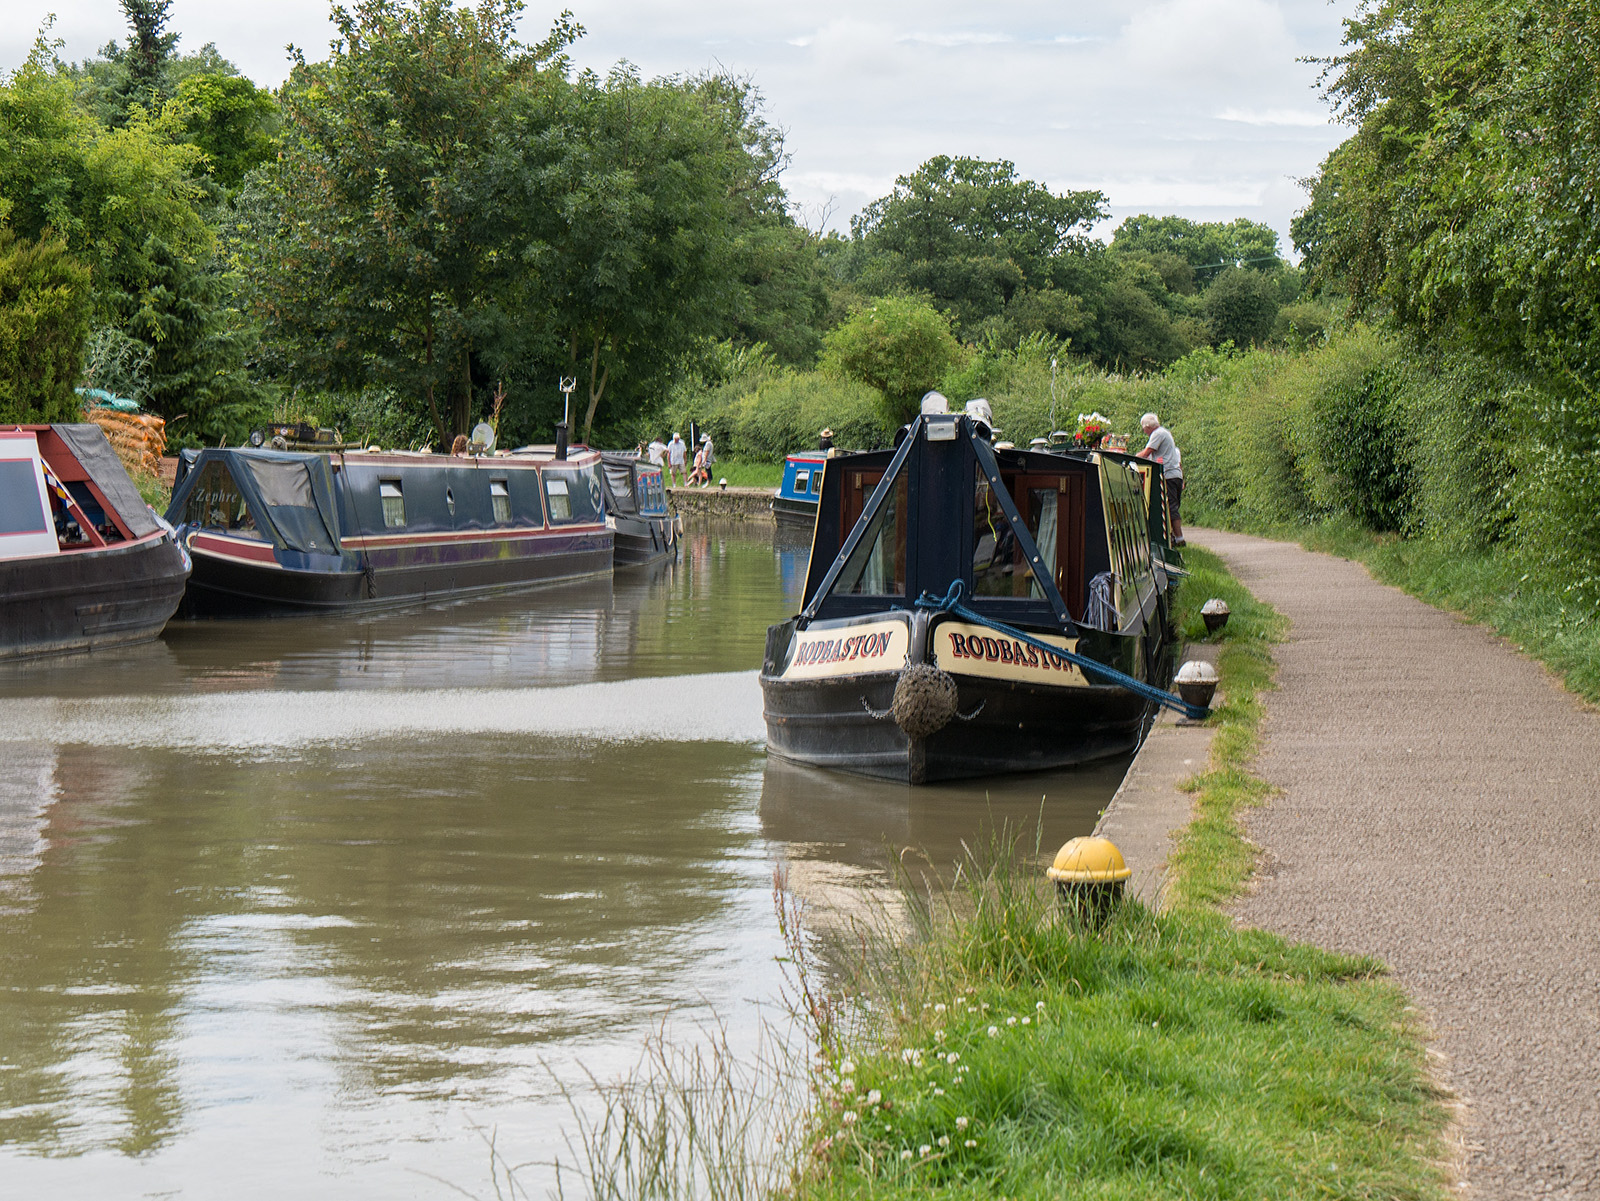 Lots of boats on the canal north of Stoke Bruerne